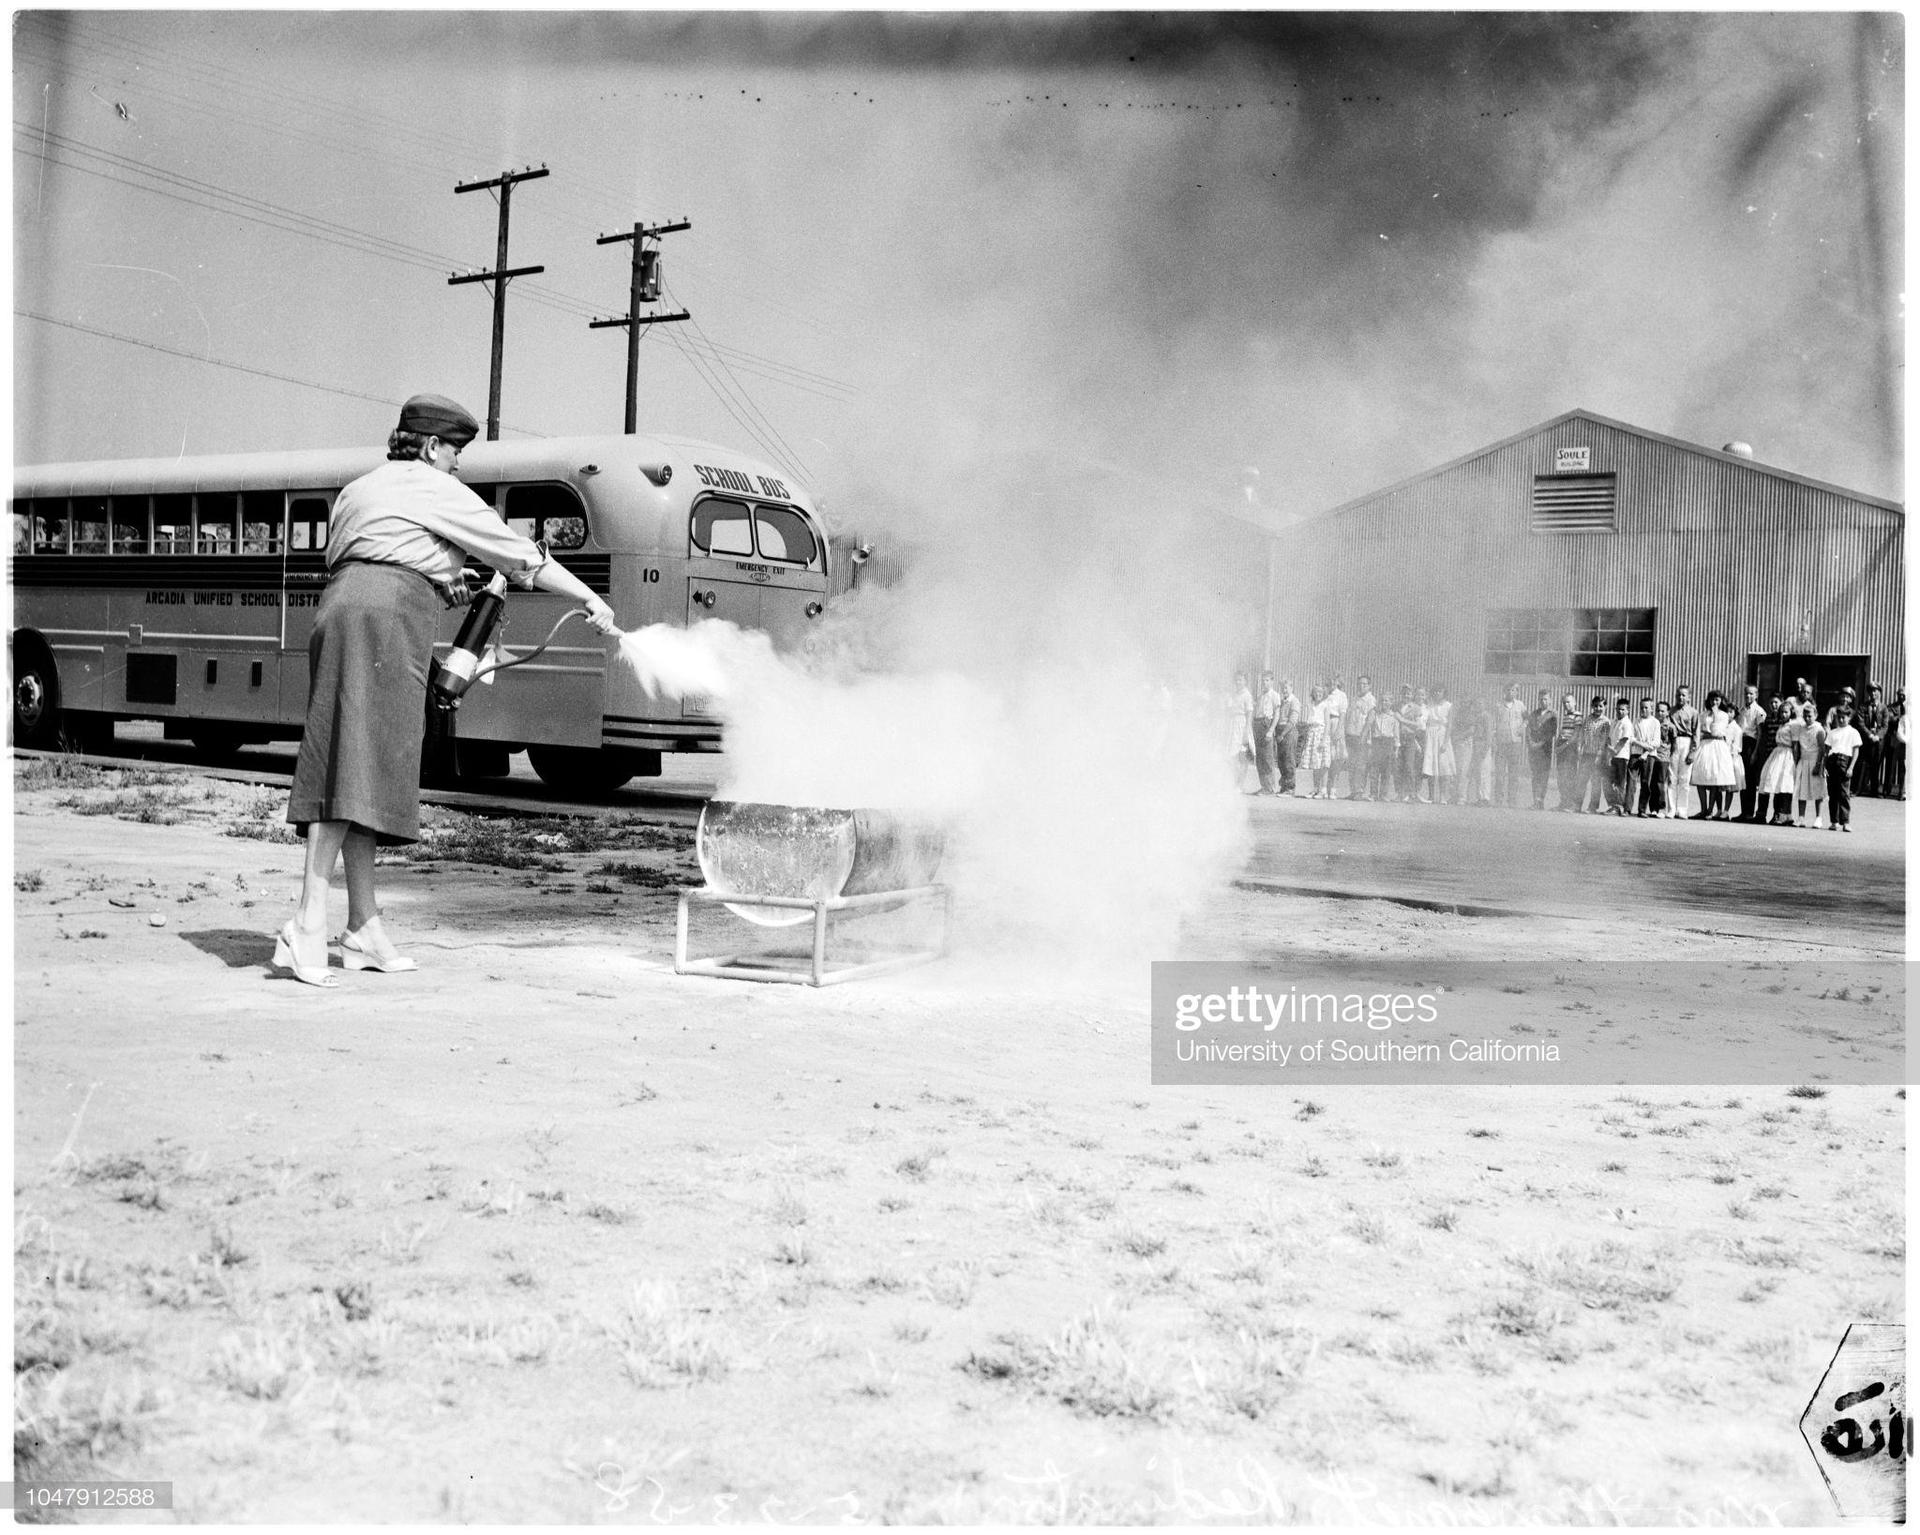 vintage photo, fire extinguisher training